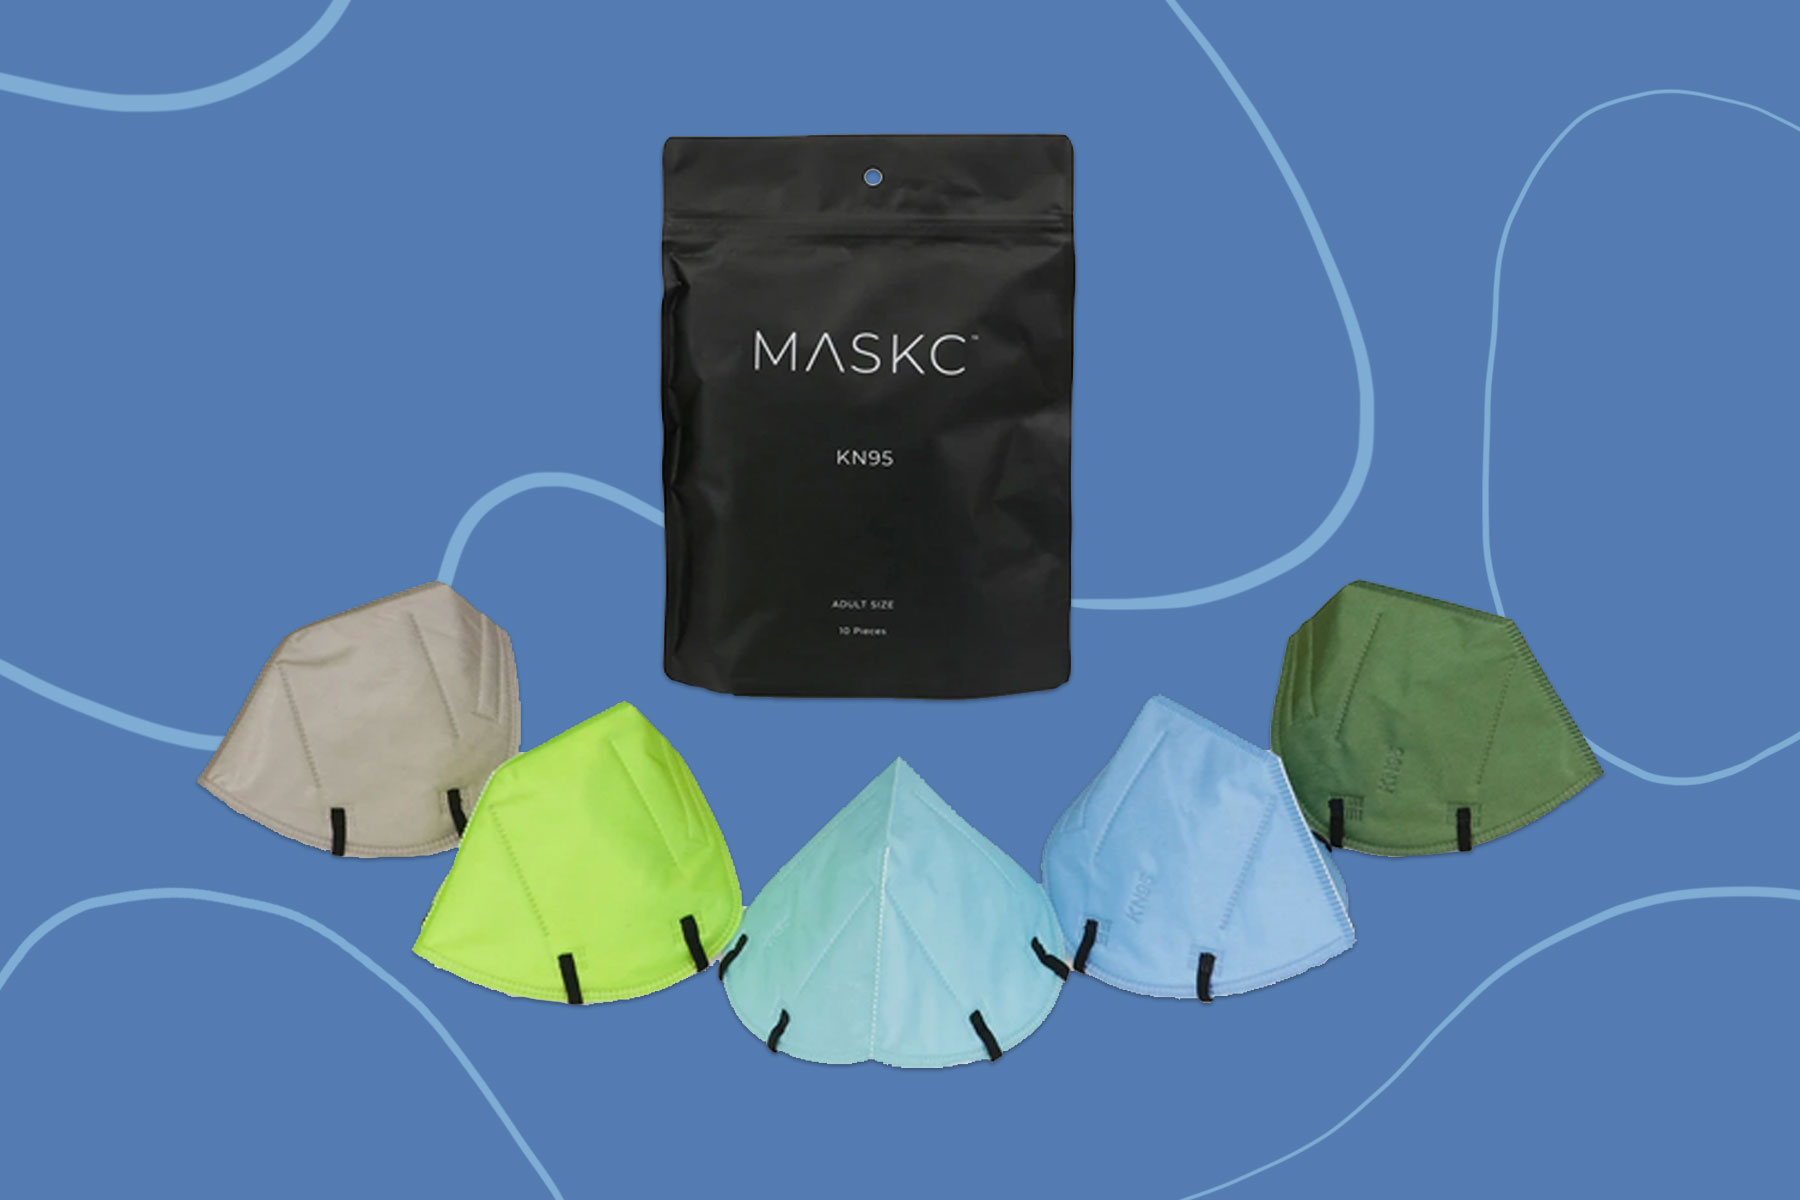 Five different colors of KN95 face masks and bag